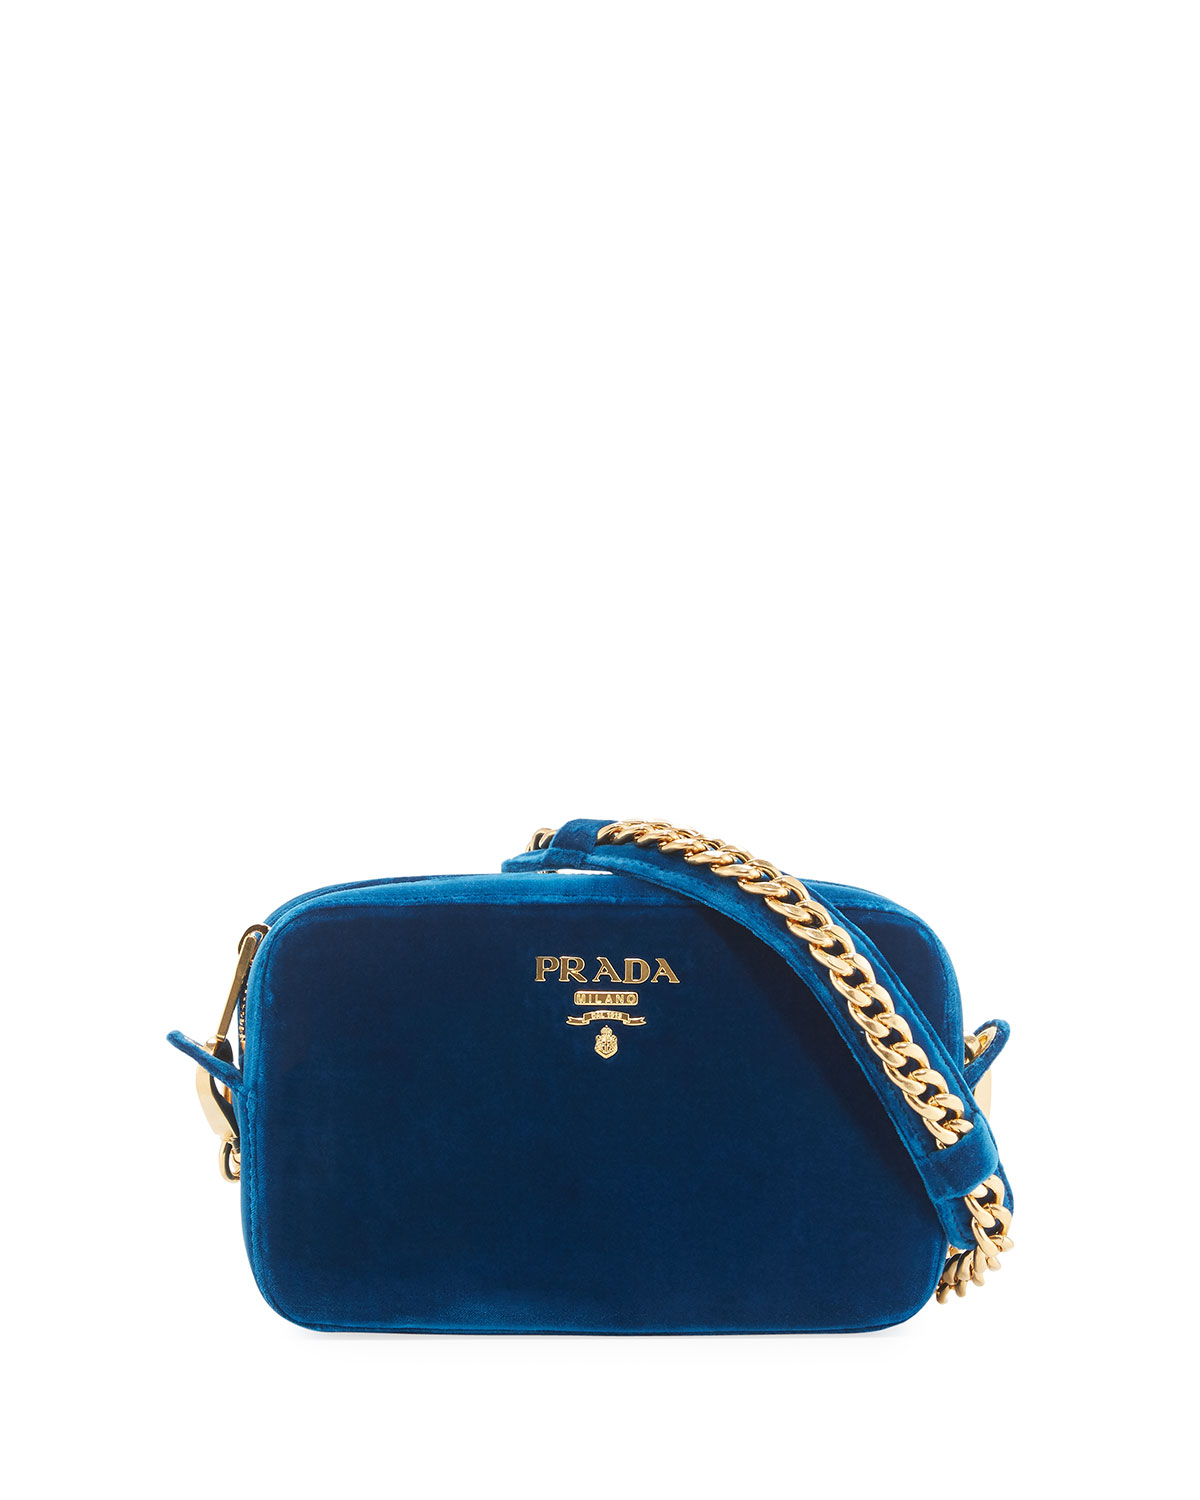 cheapest prada x27dainox27 navy leather tote bag e13bd 477ec  coupon code  prada velvet zip top chain shoulder bag neiman marcus 3eaec 0877c 1e370dfb6bfc7